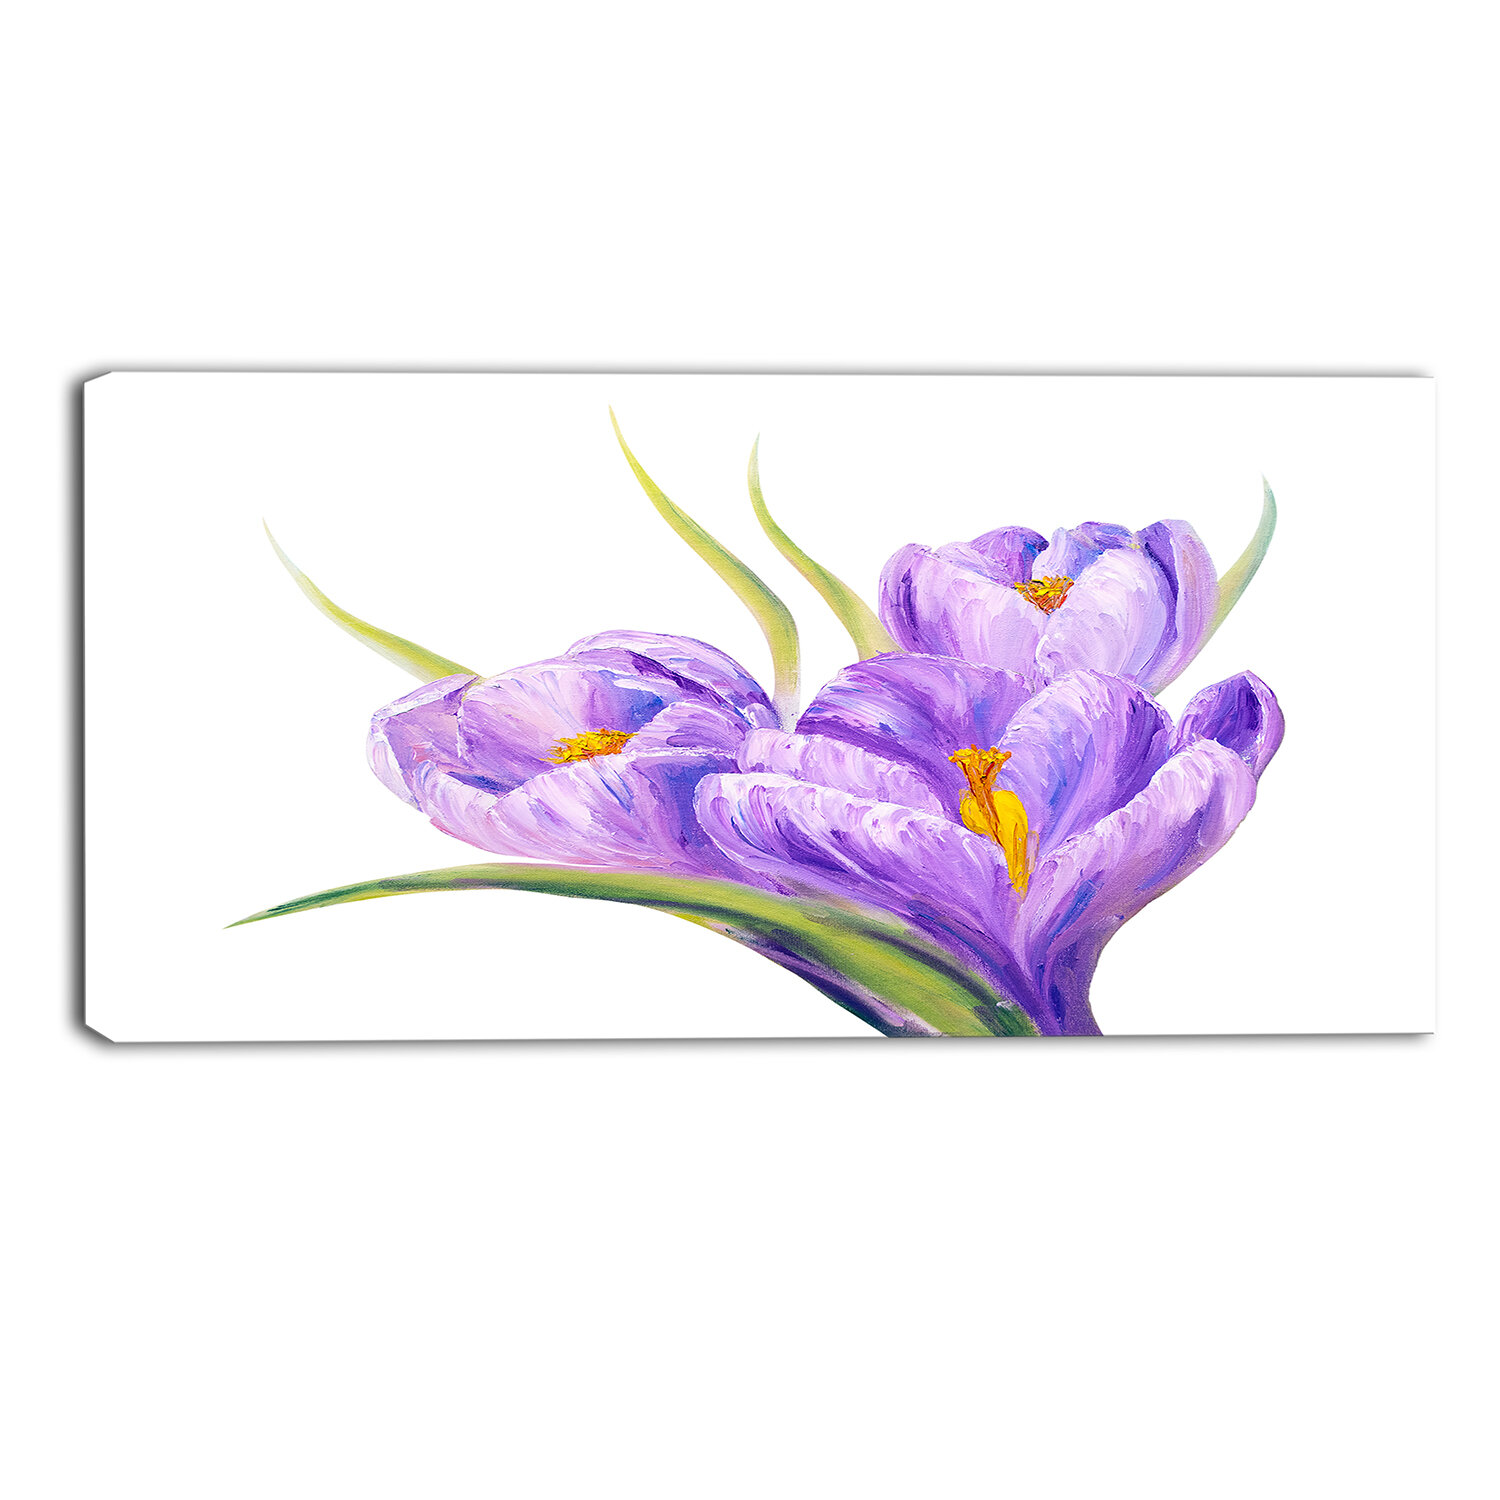 Designart Crocuses Background Floral Painting Print On Wrapped Canvas Wayfair